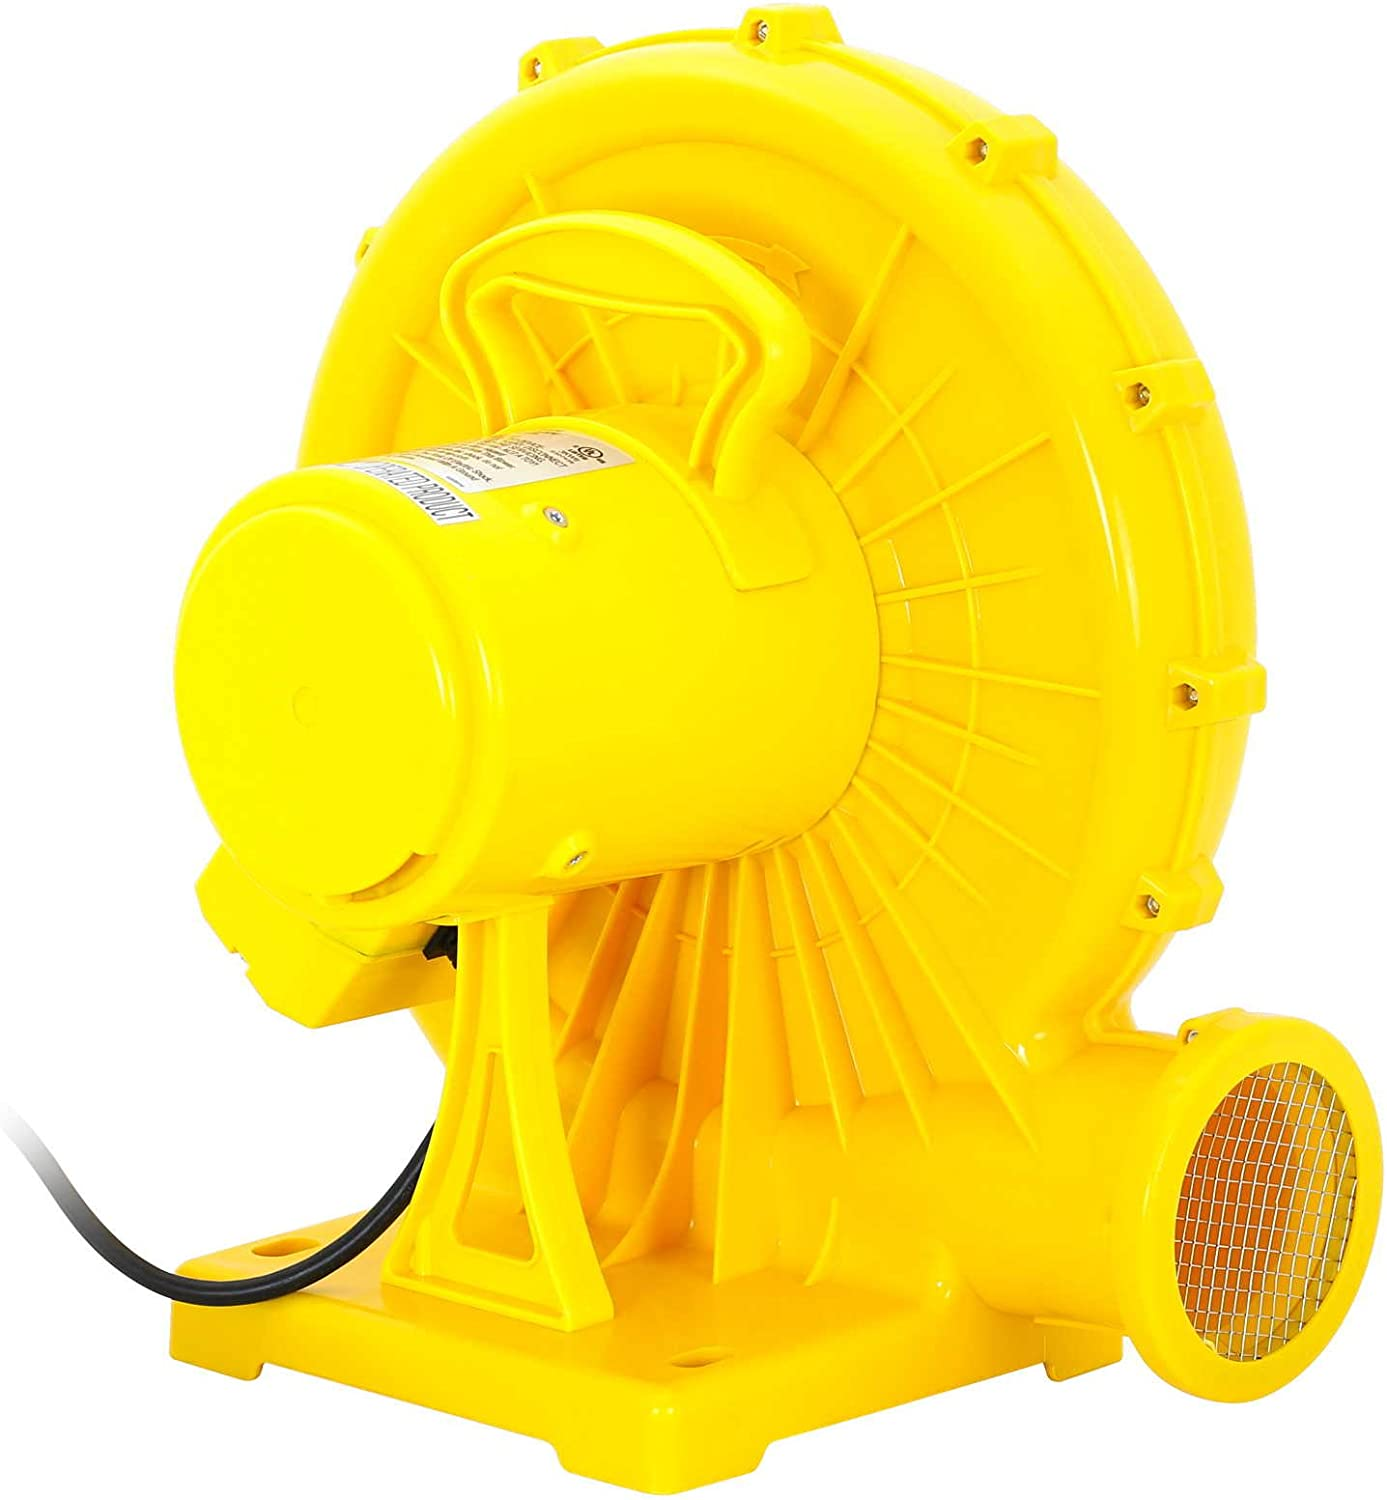 Cloud 9 Commercial Inflatable Bounce House Blower - 1,200 Watts (1.5 HP)